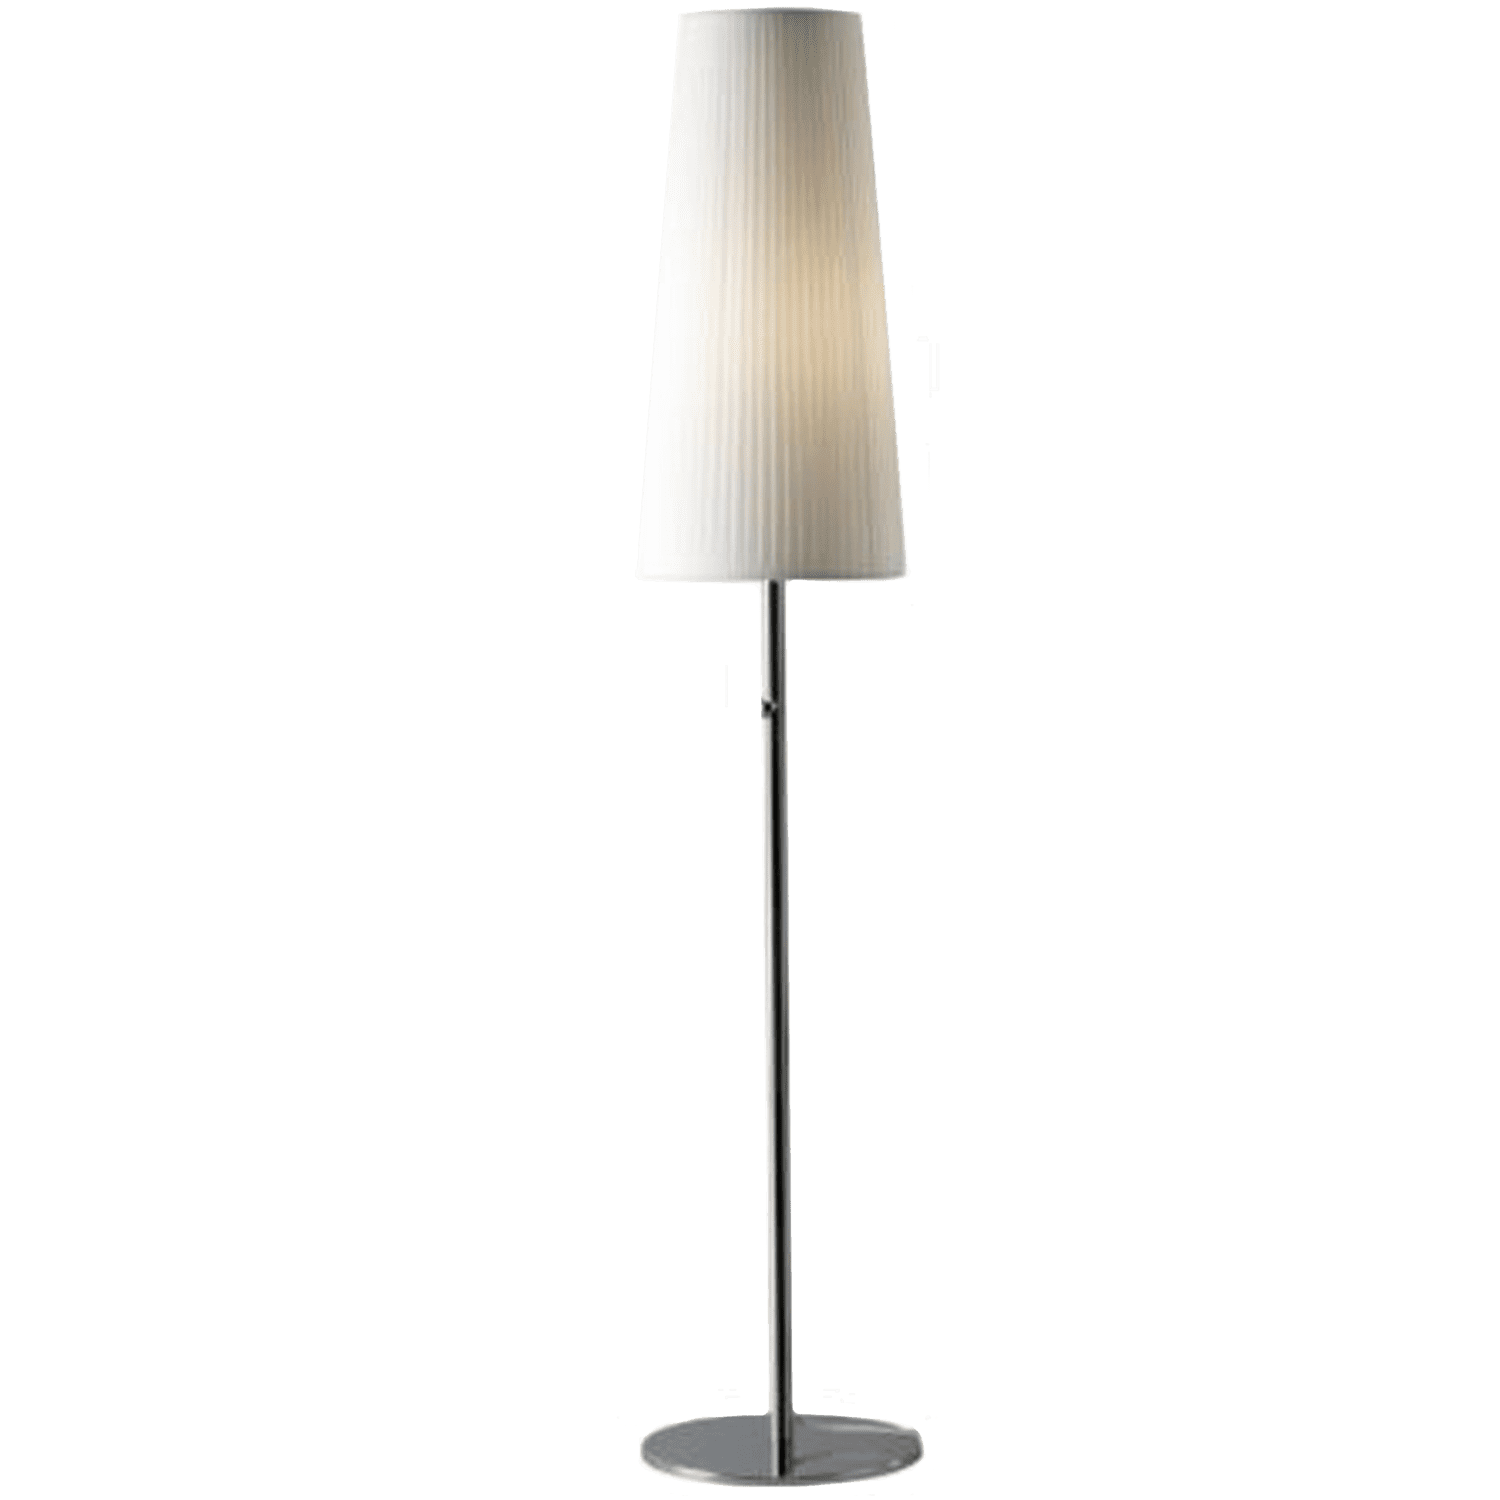 Stehlampe Dimmbar Rent A Lounge